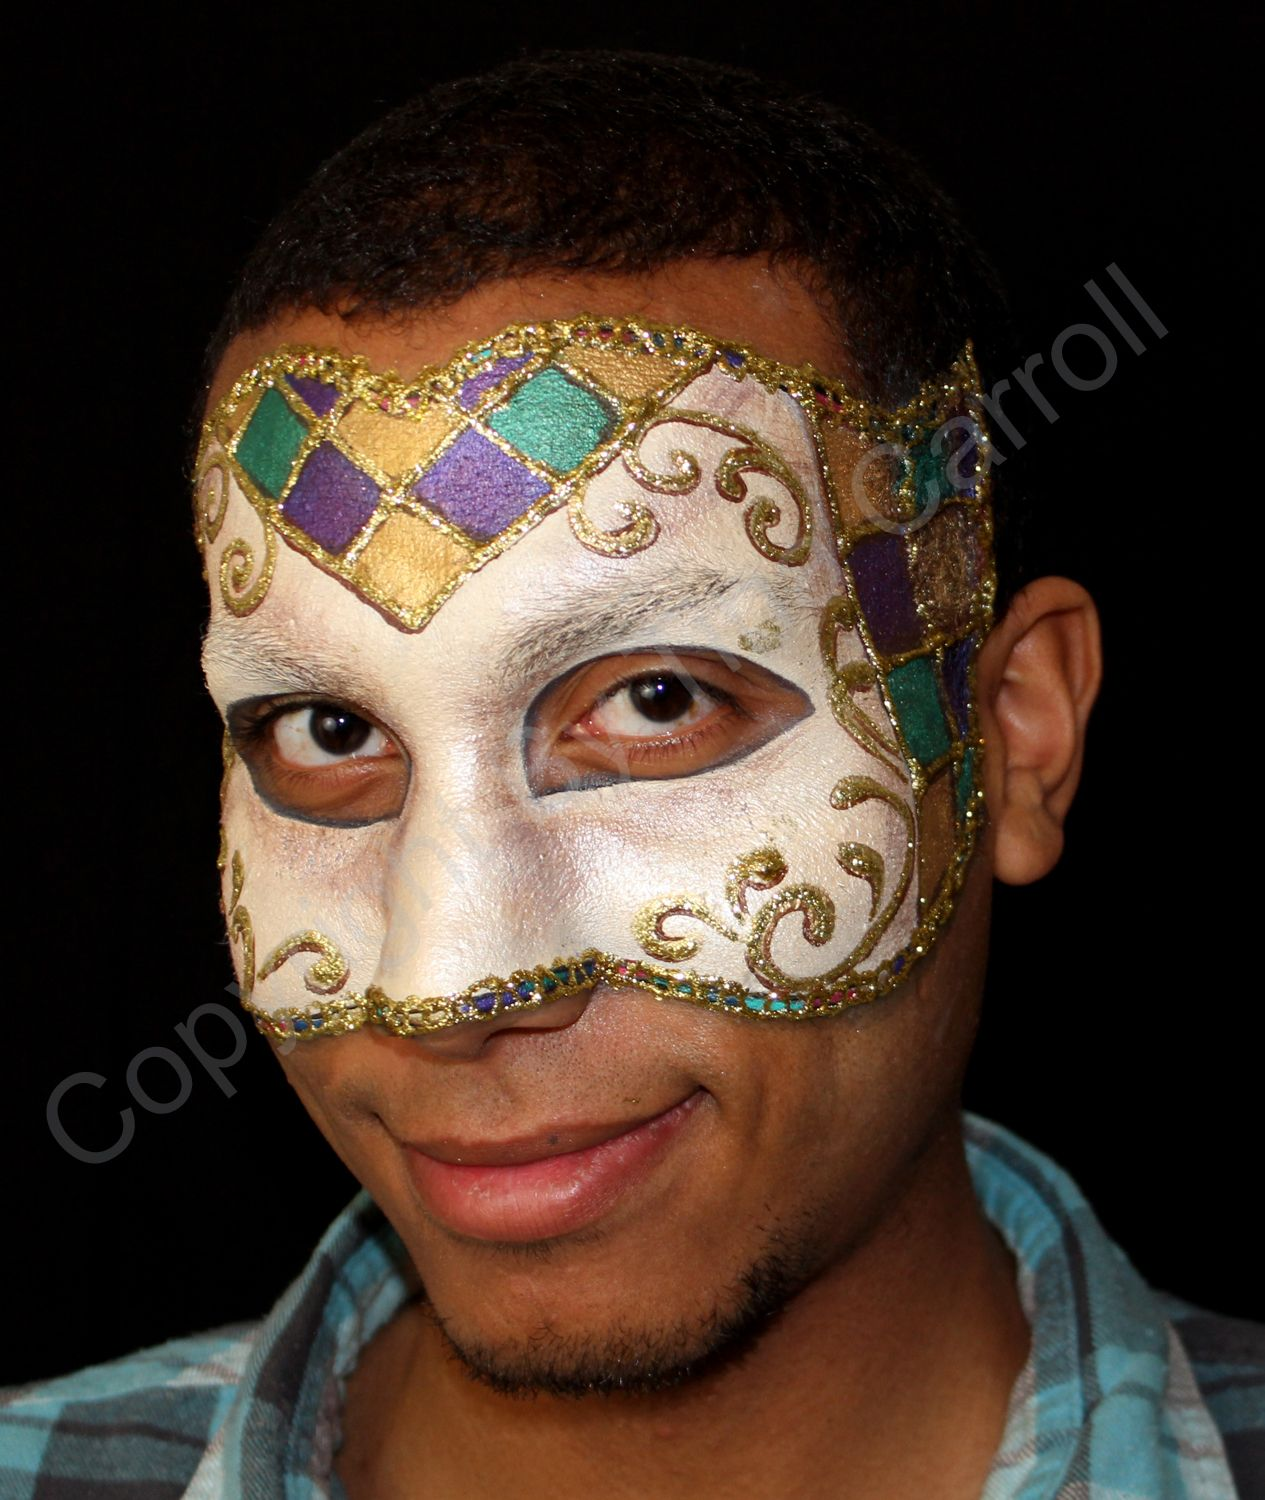 Try a purple, green and yellow combination to represent the traditional Mardi Gras colors. Work in some metallic paints for an old-fashioned look. Paint a jester-style diamond pattern as shown.